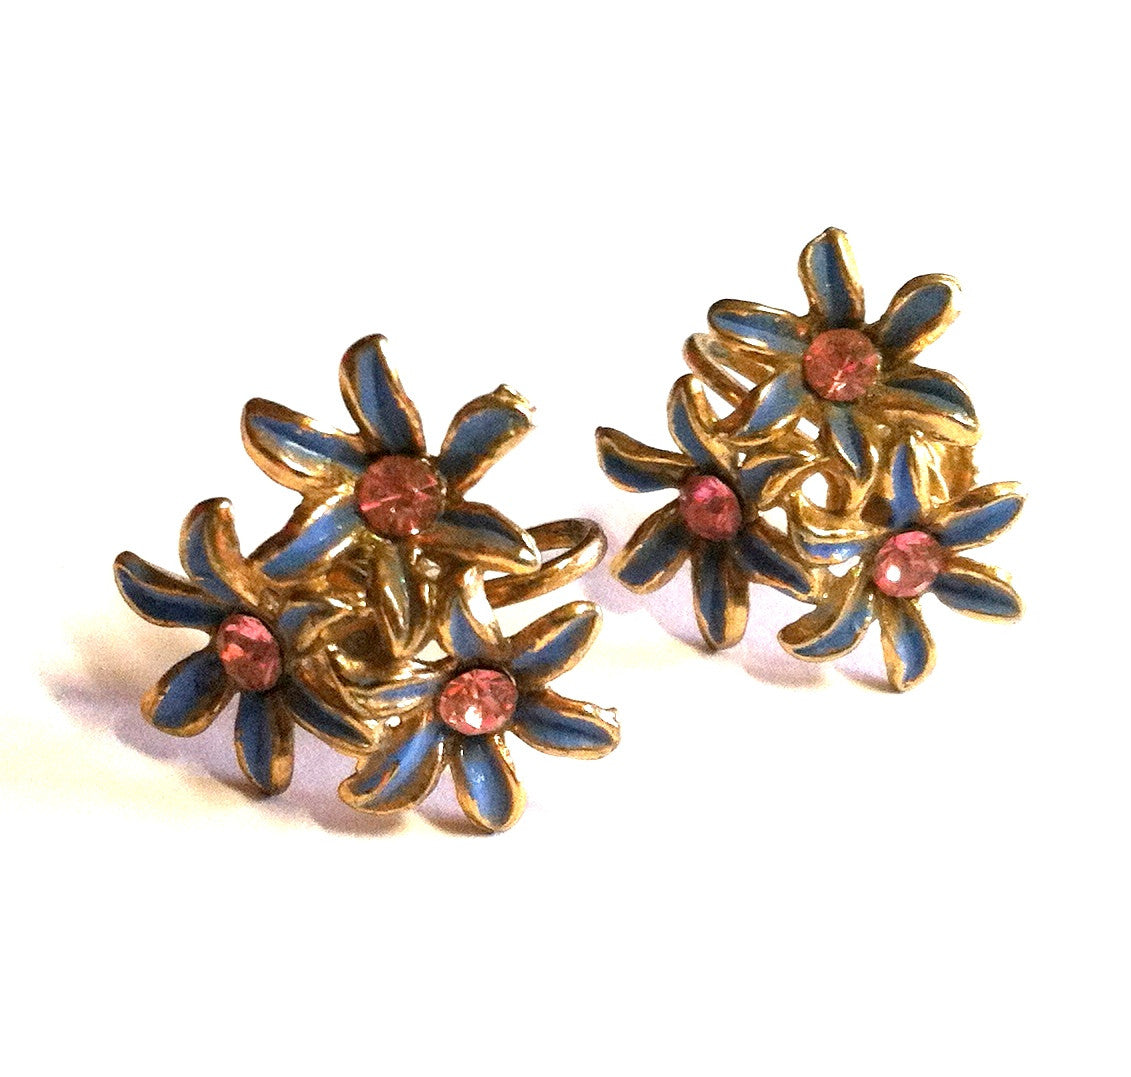 Sweet Pink Rhinestone Blue Enameled Flower Screwback Clip Earrings circa 1950s Dorothea's Closet Vintage Jewelry